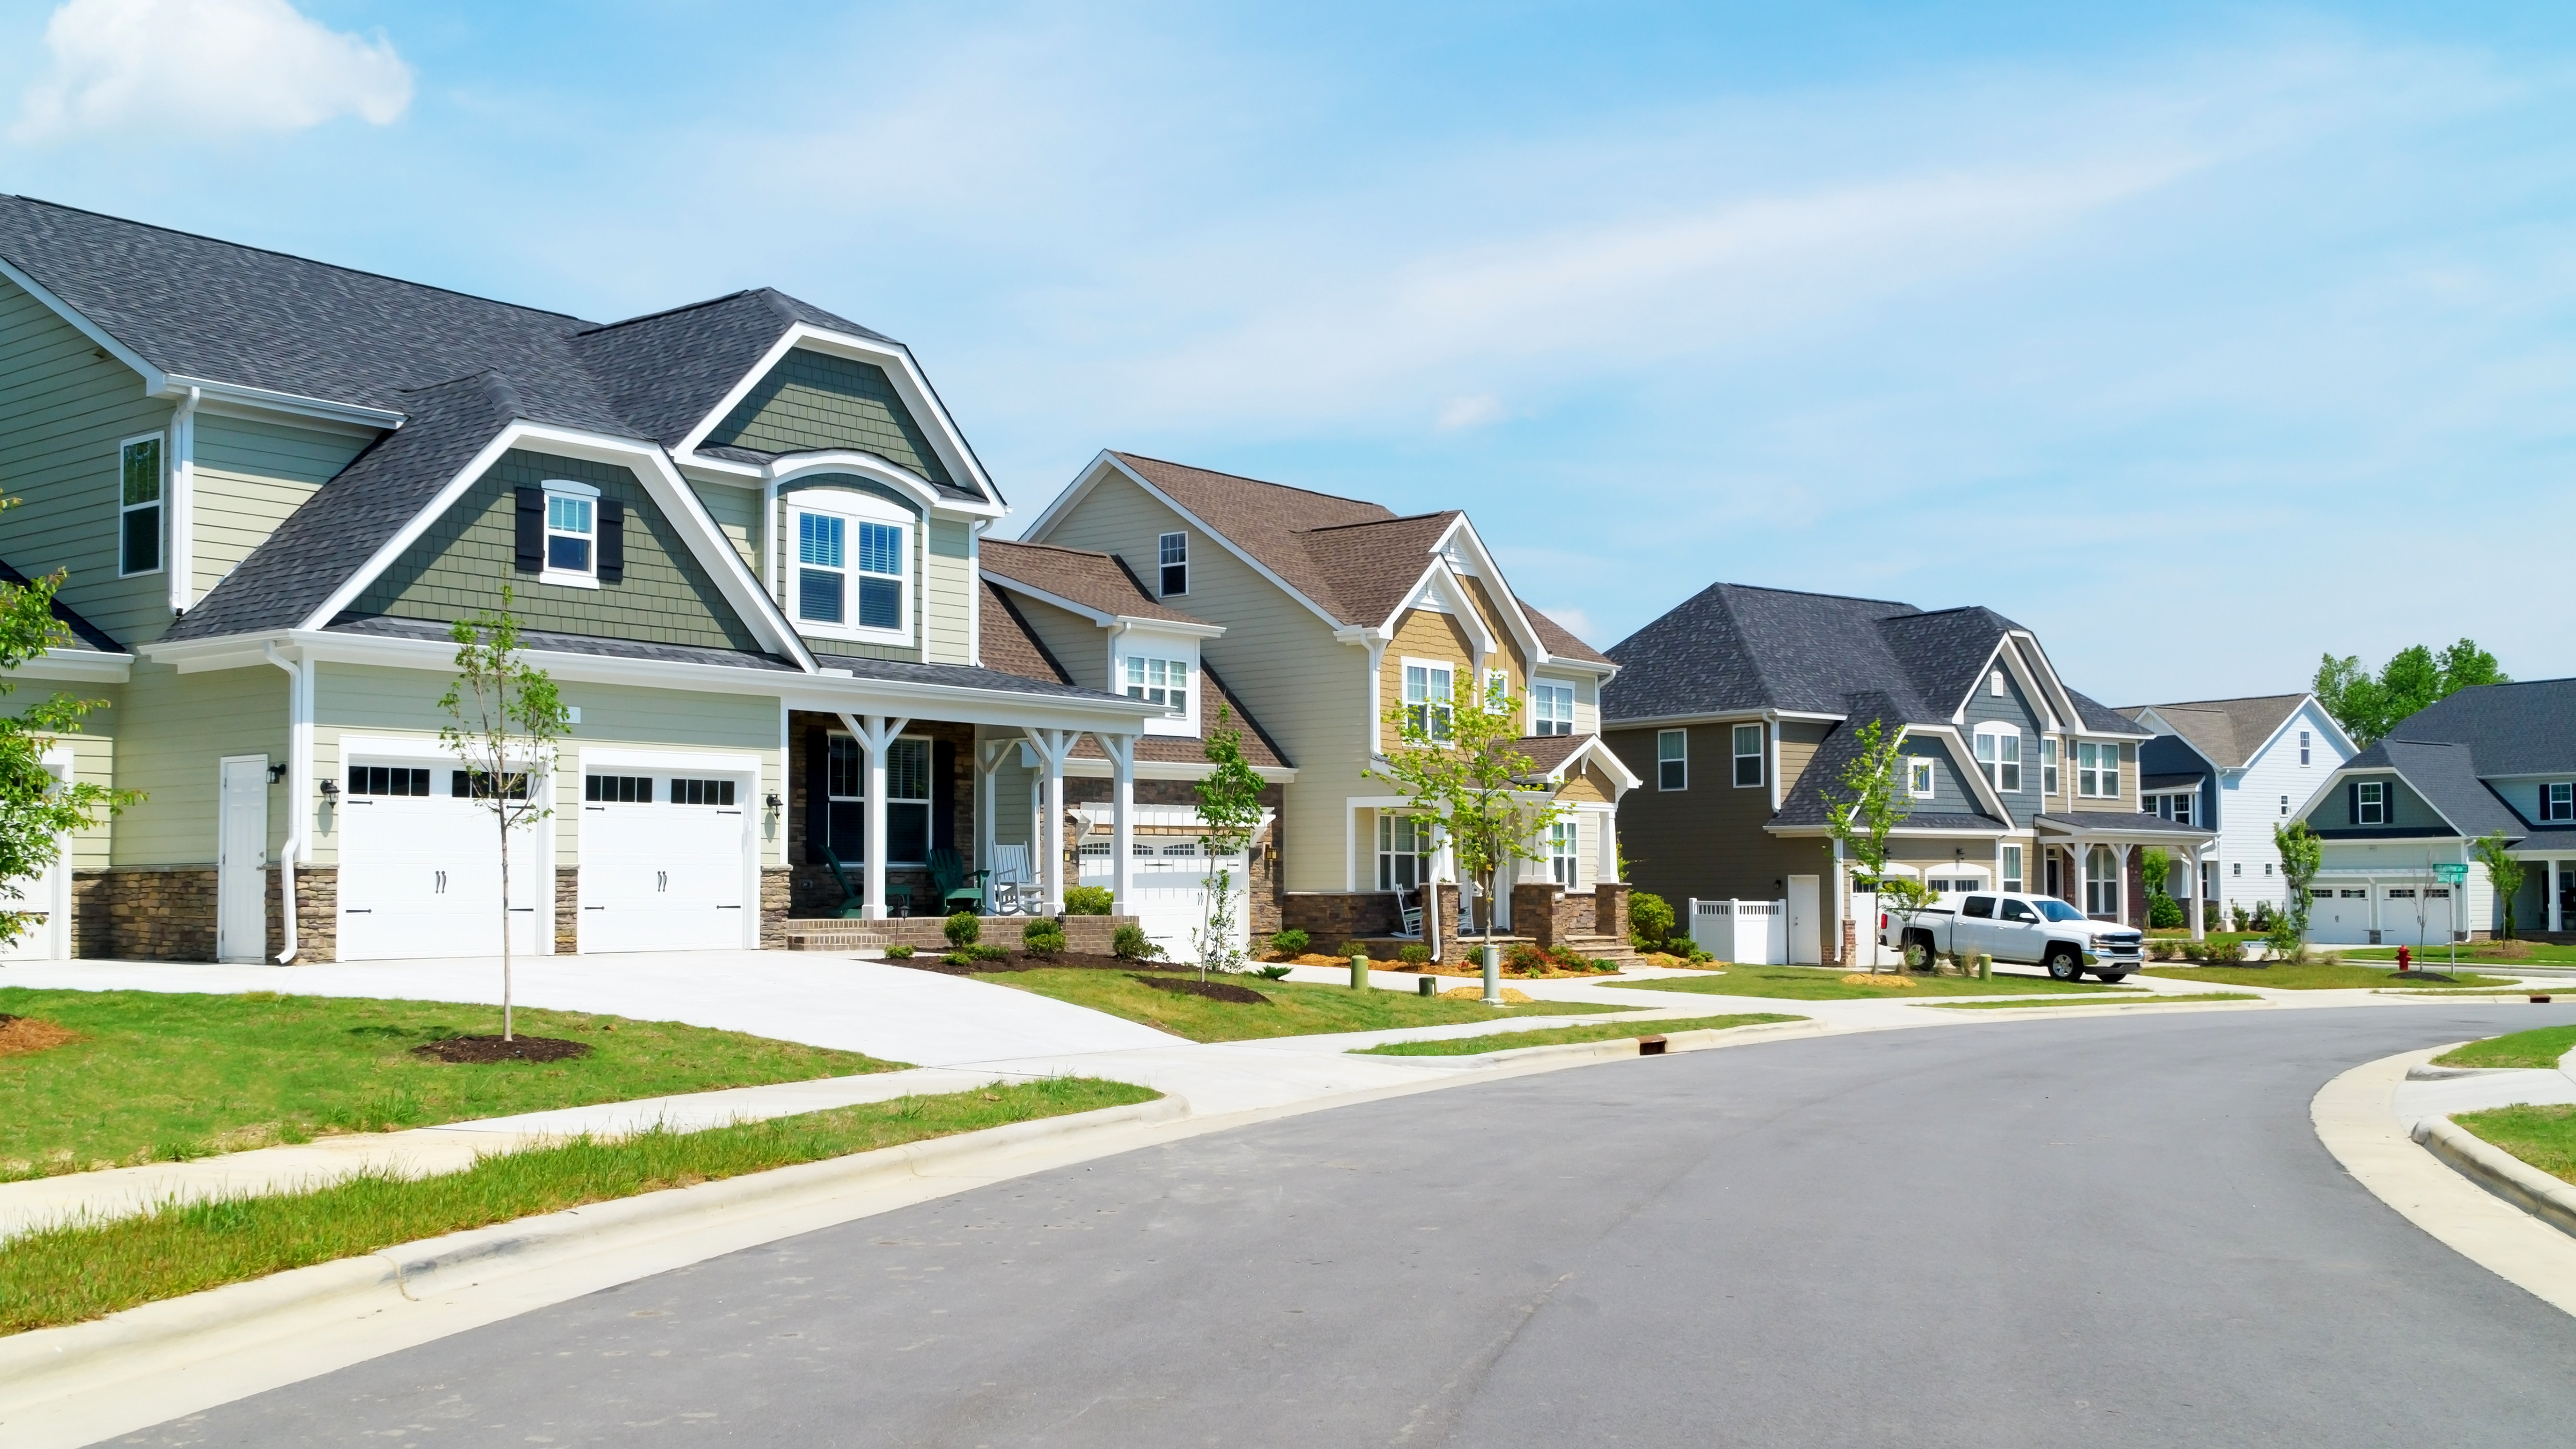 A row of two-story homes on an average suburban street in the United States.